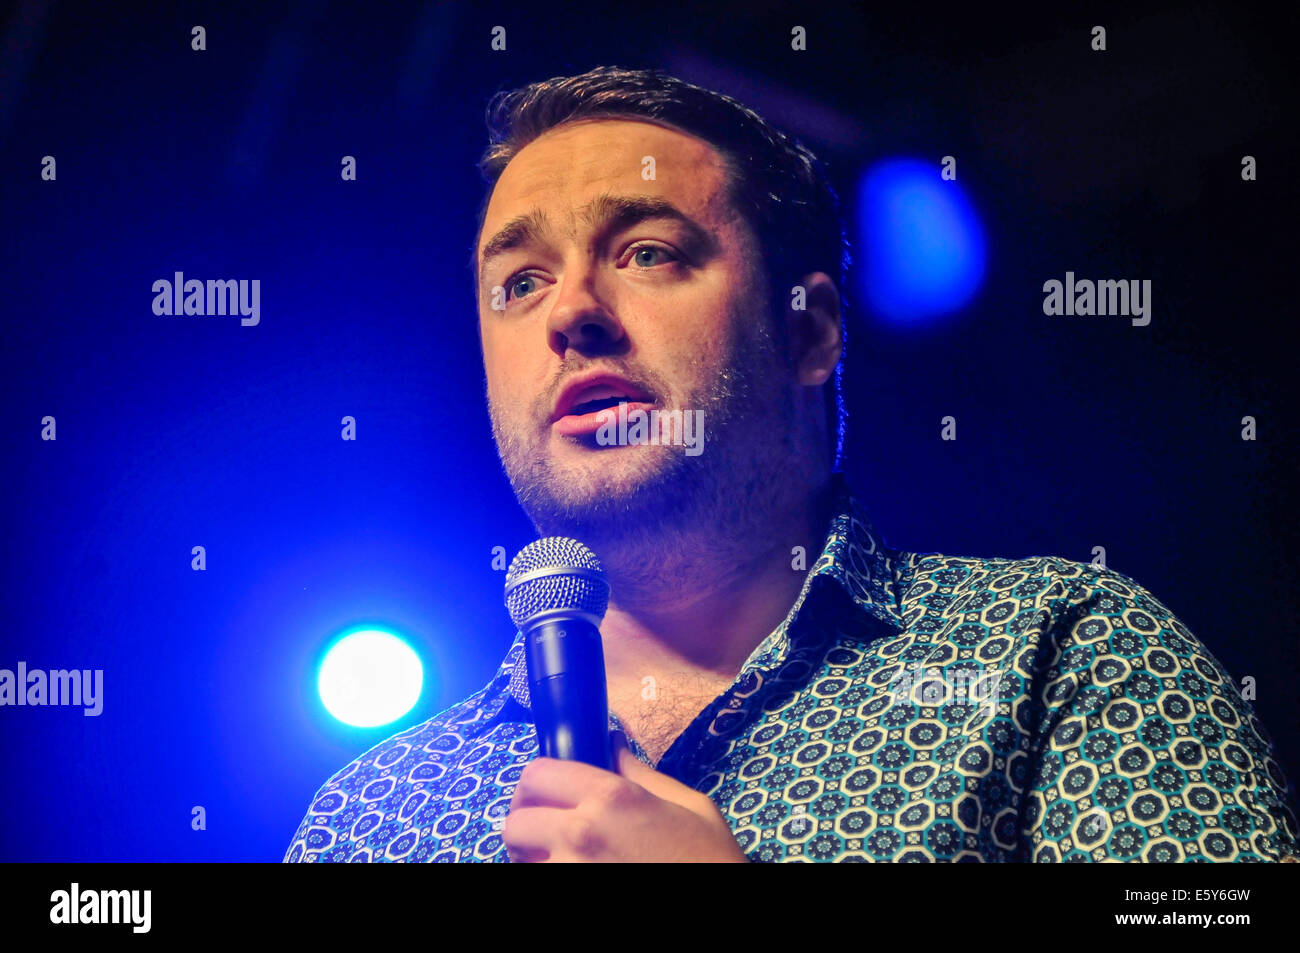 Belfast, Northern Ireland. 7 Aug 2014 - Mancunian Jason Manford performs at Stand-up Comedy night, Feile an Phobail - Stock Image